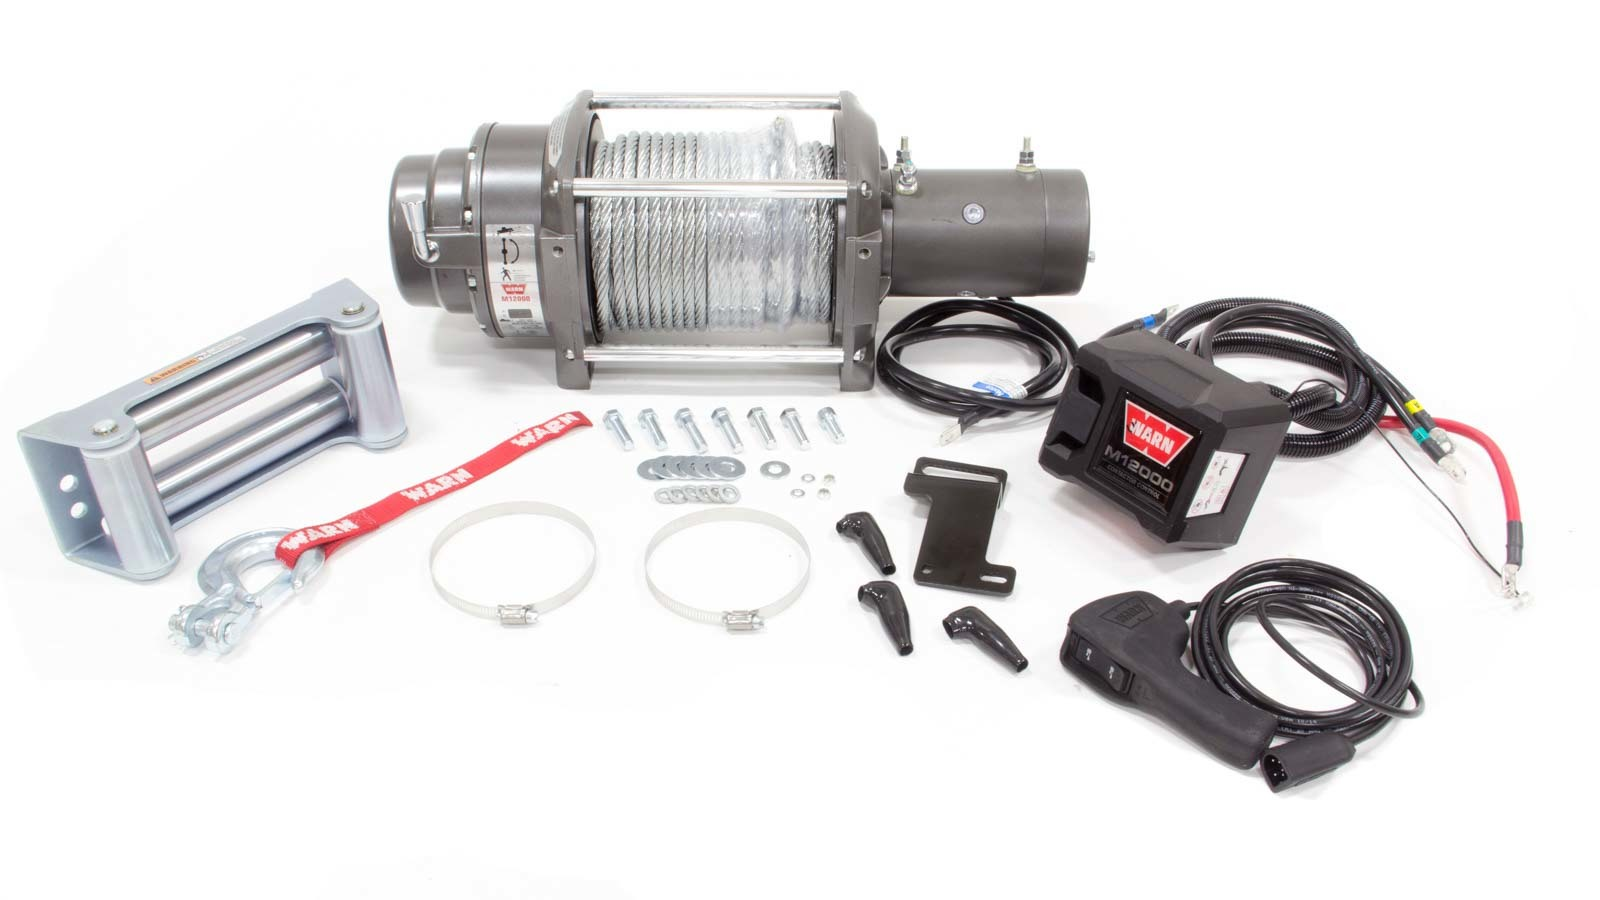 Warn 17801 Winch, M12000, 12000 lb Capacity, Roller Fairlead, 12 ft Remote, 3/8 in x 125 ft Steel Rope, 12V, Kit